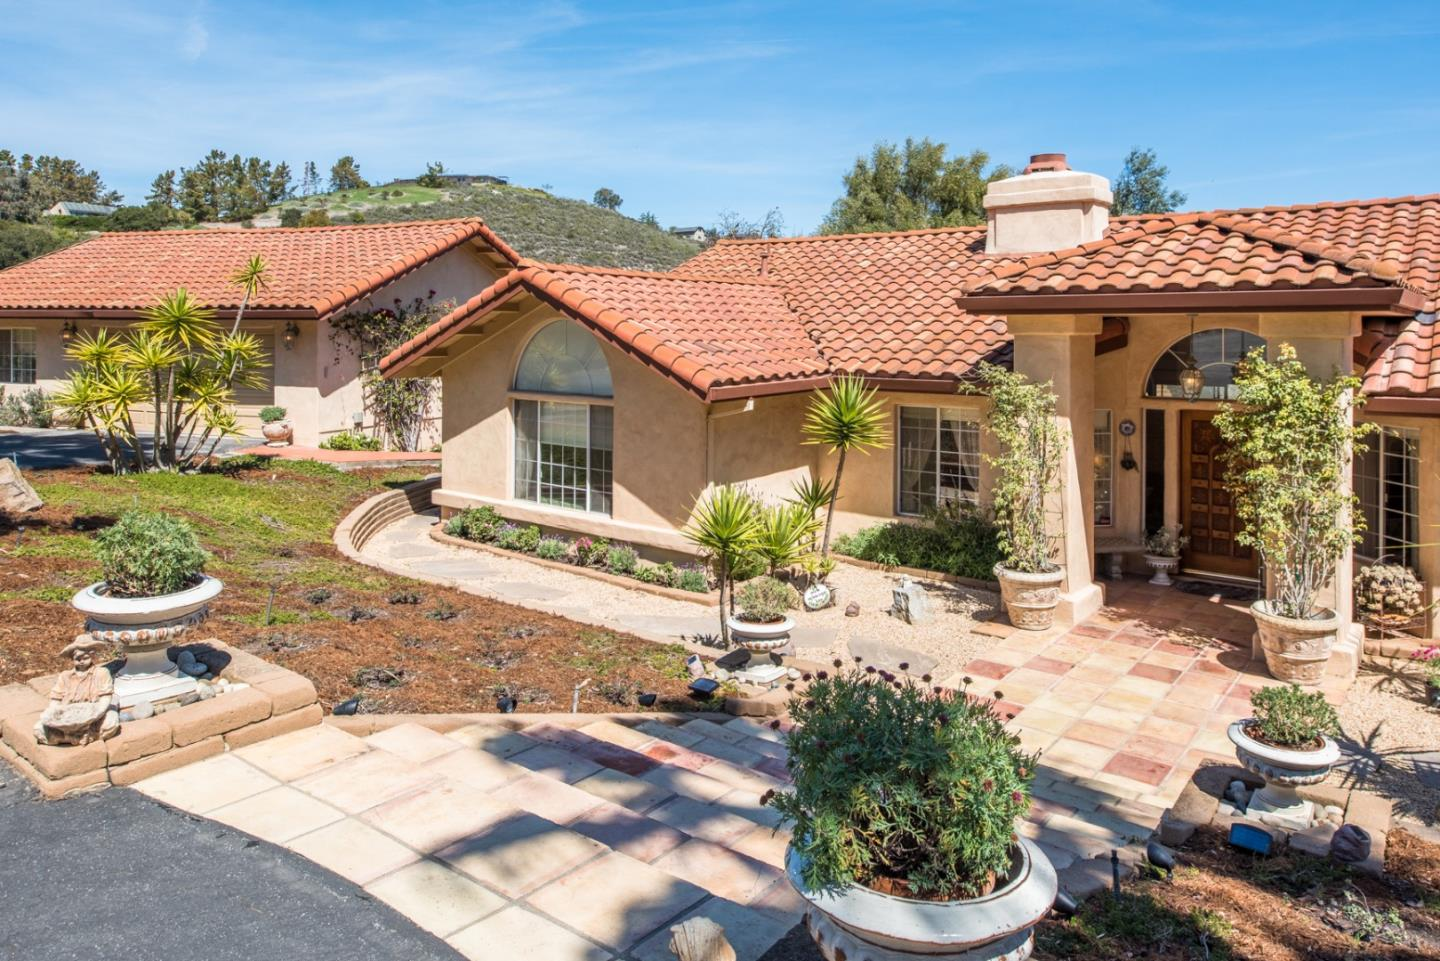 Property for sale at 26205 Rinconada DR, Carmel Valley,  CA 93924